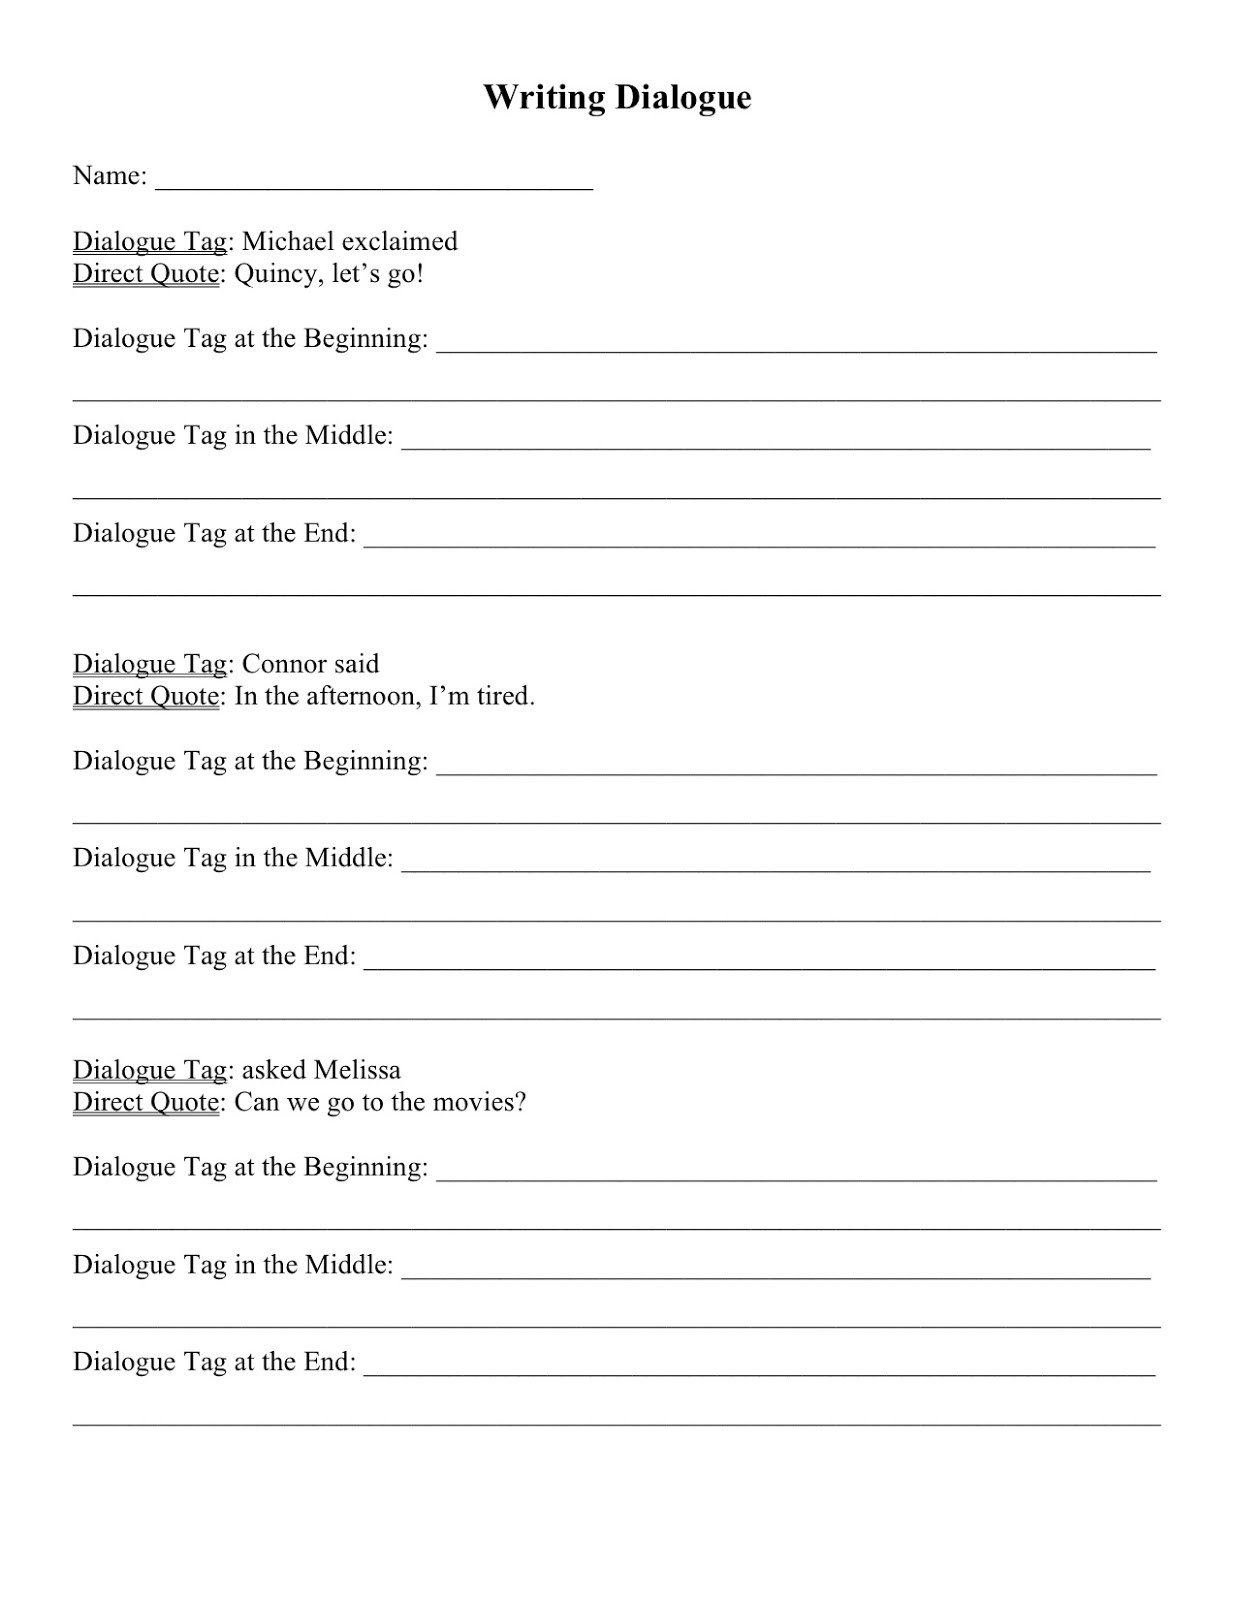 Dialogue Worksheets for Middle School How to Write A Dialogue Writing